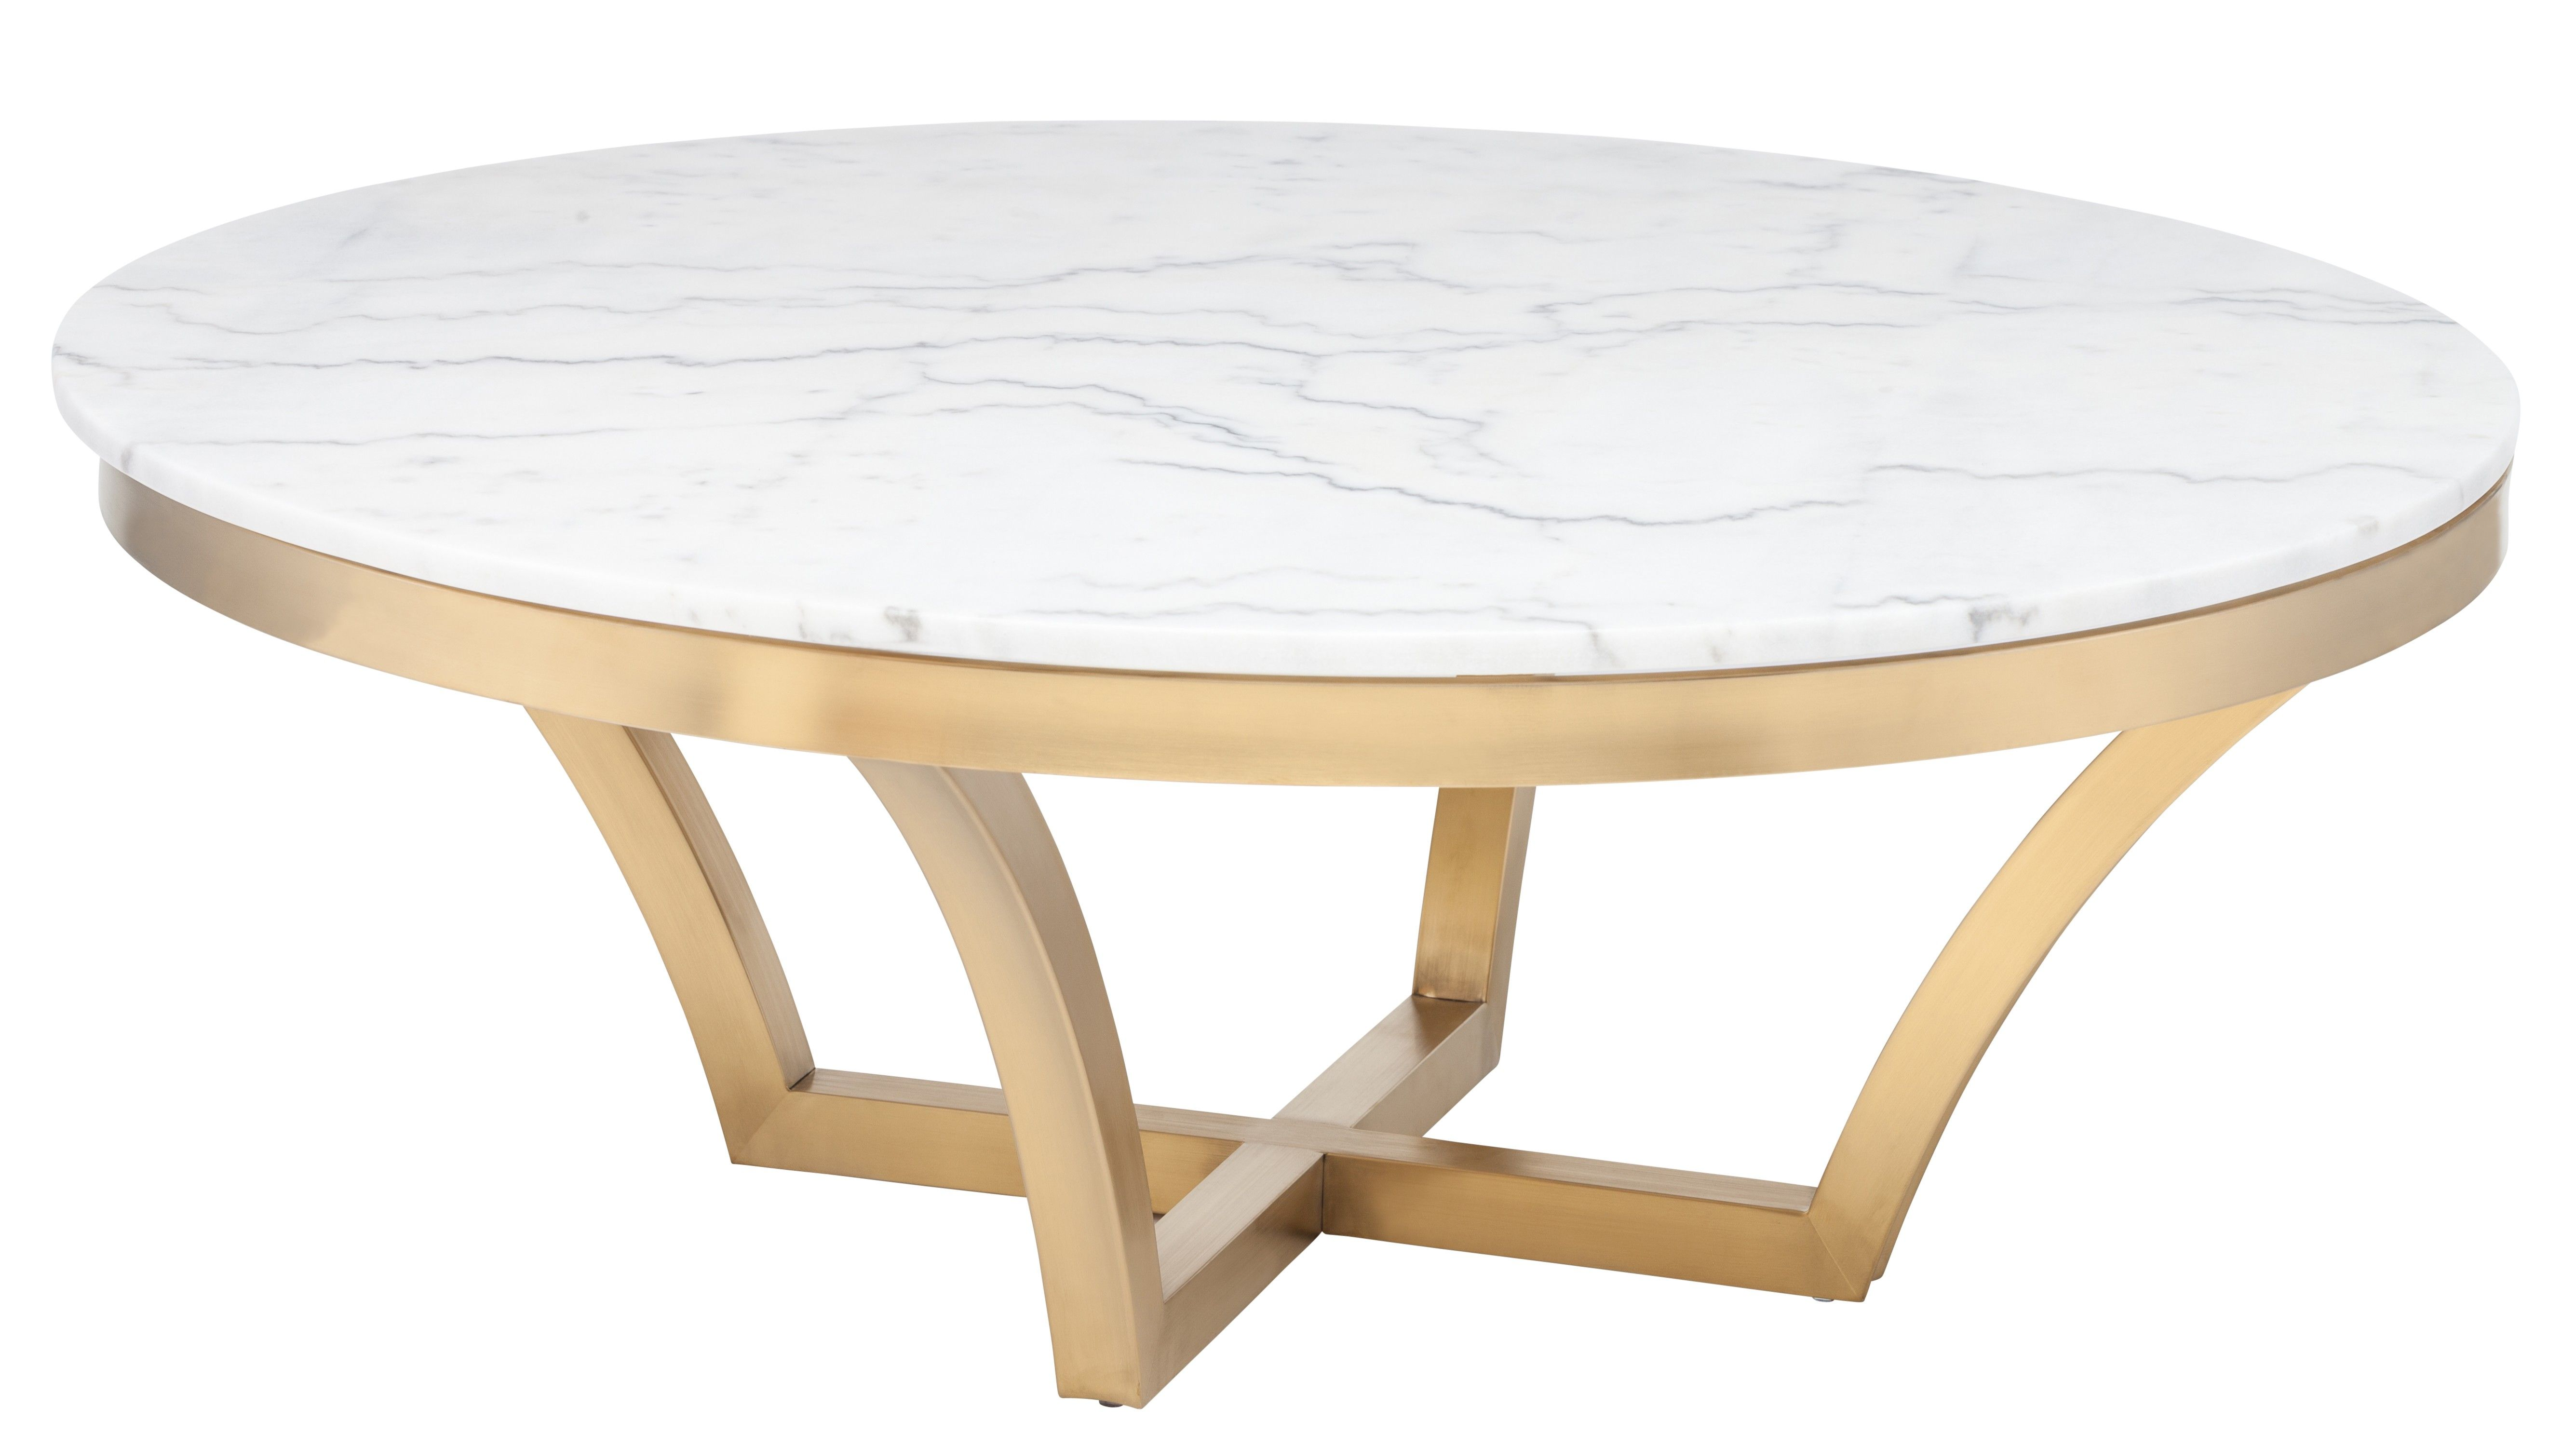 For A E Needing Pop Of Style We Suggest The Emmette Coffee Table With Simple Yet Elegant Brushed Gold Base And White Marble Top This Look Will